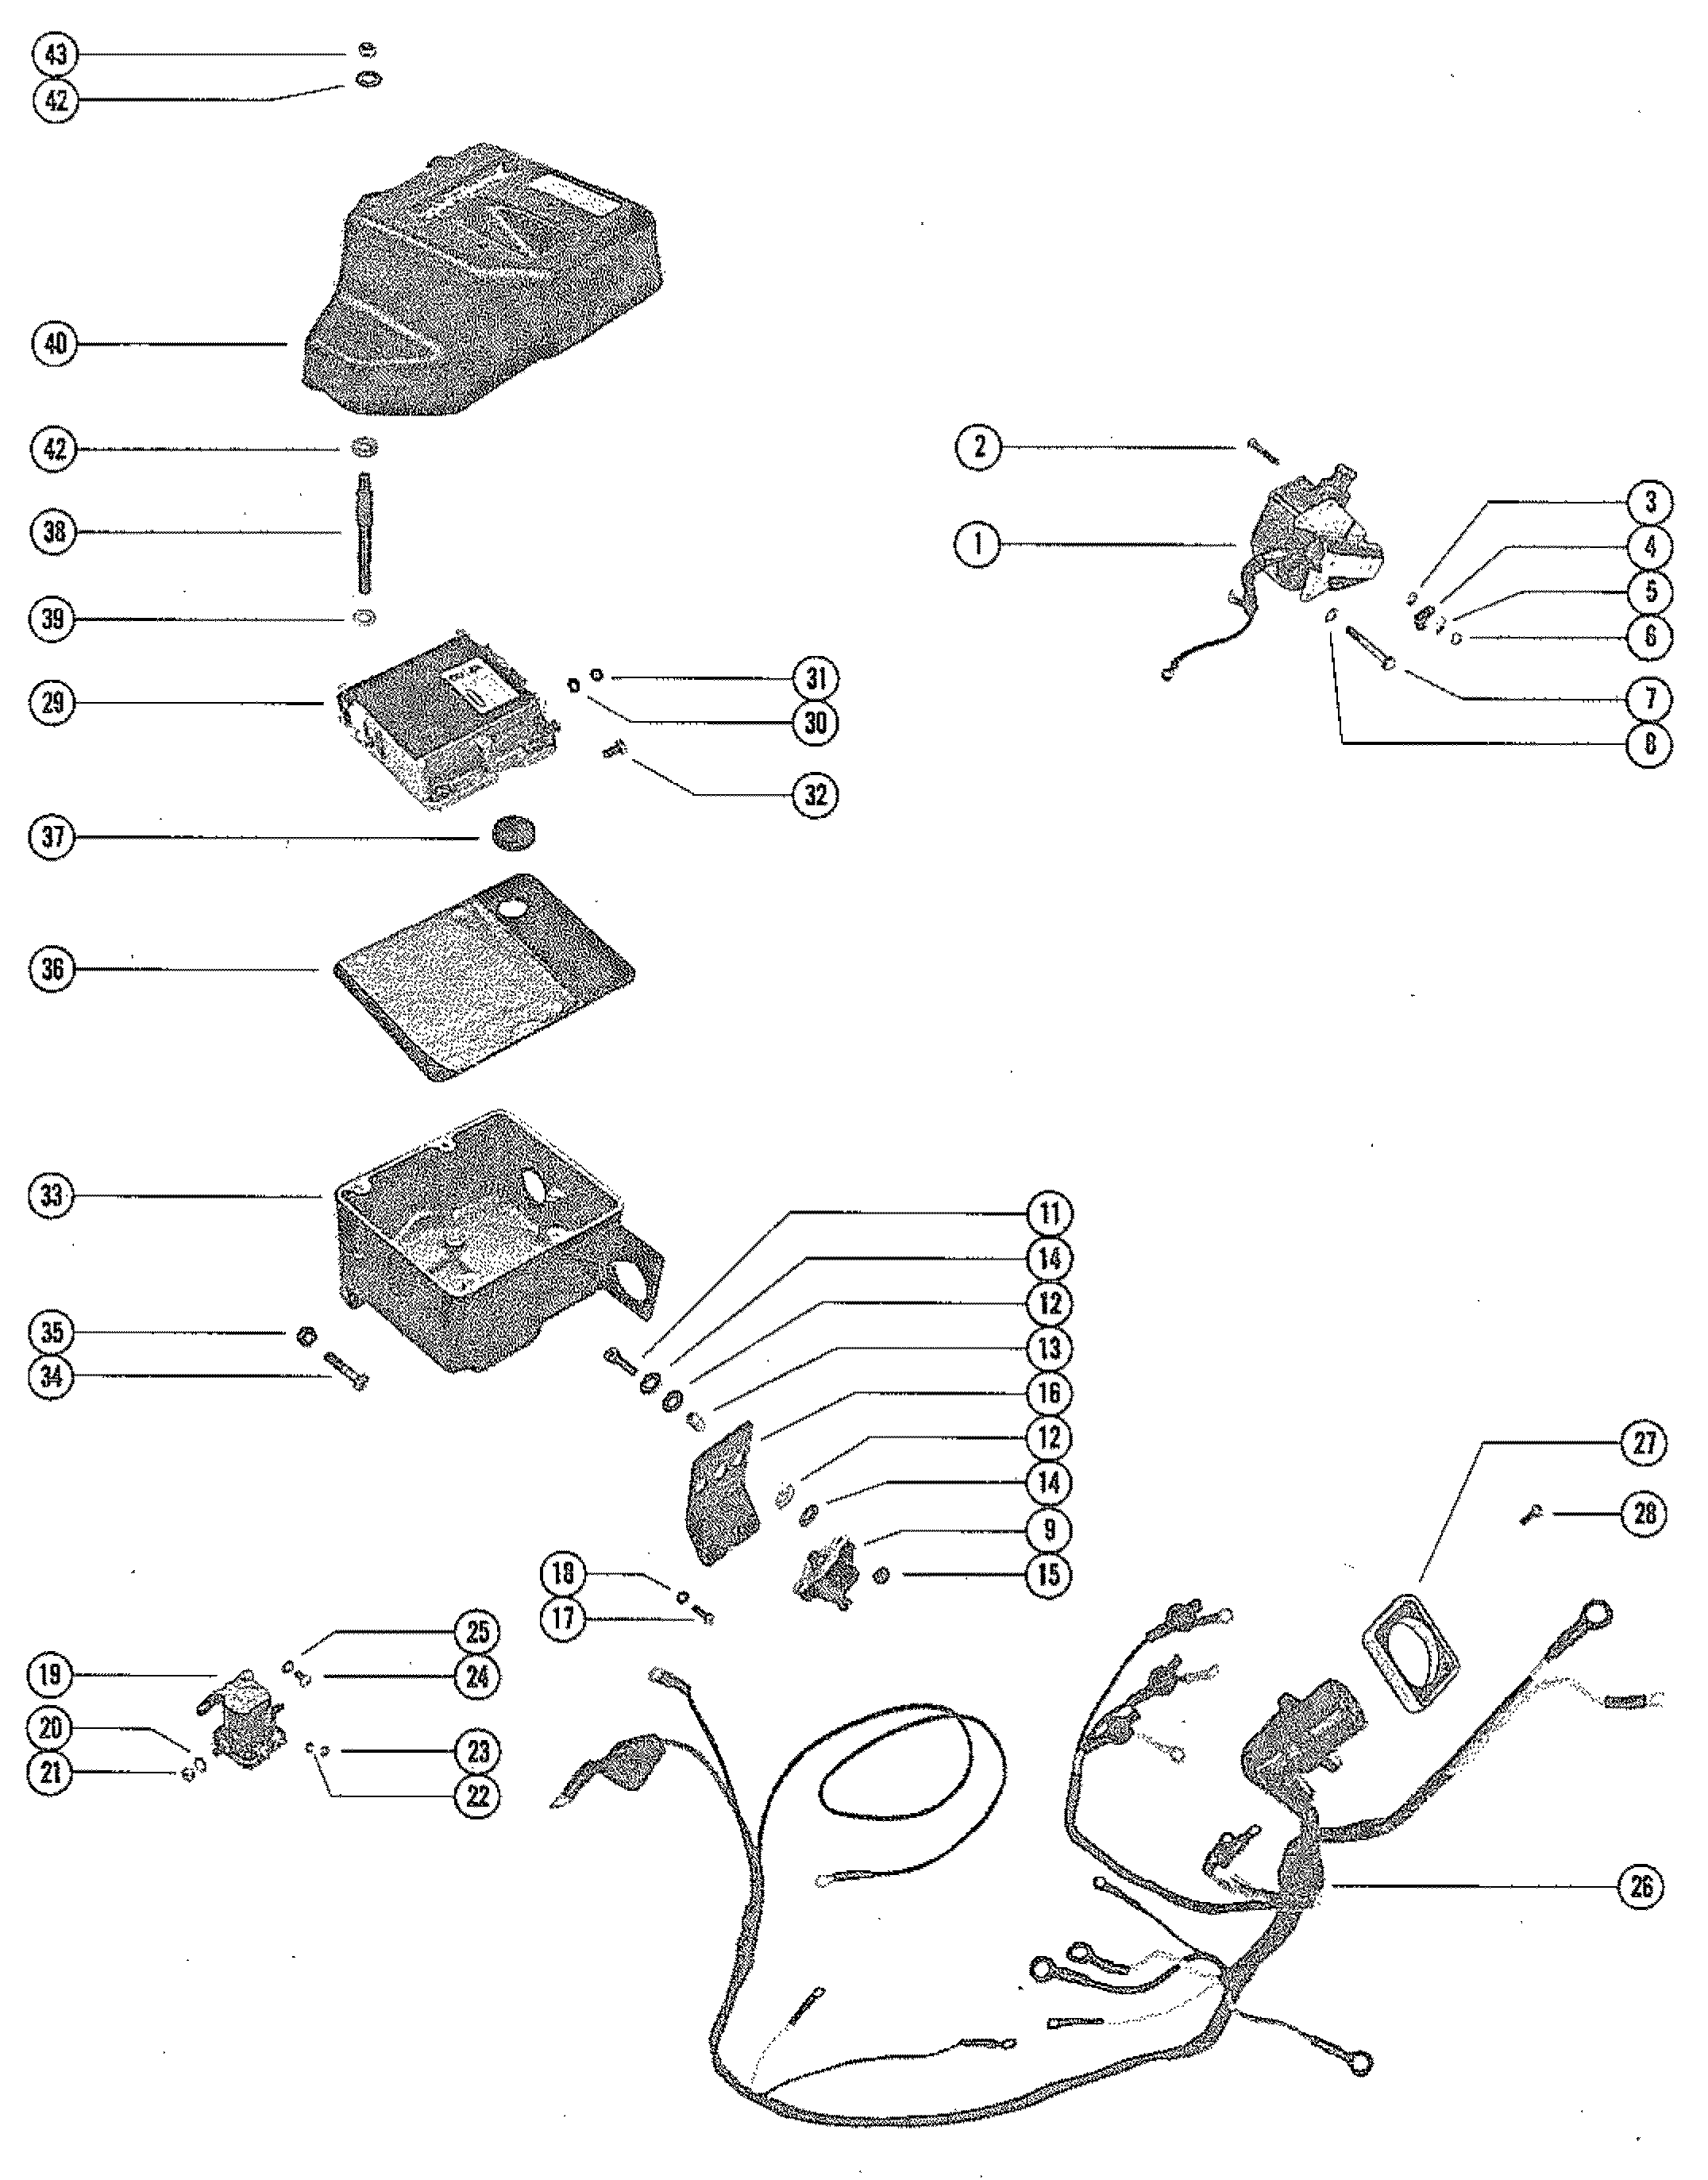 A8 1997 mercruiser 454 wiring diagram mercruiser cooling system thunderbolt iv wiring diagram at n-0.co